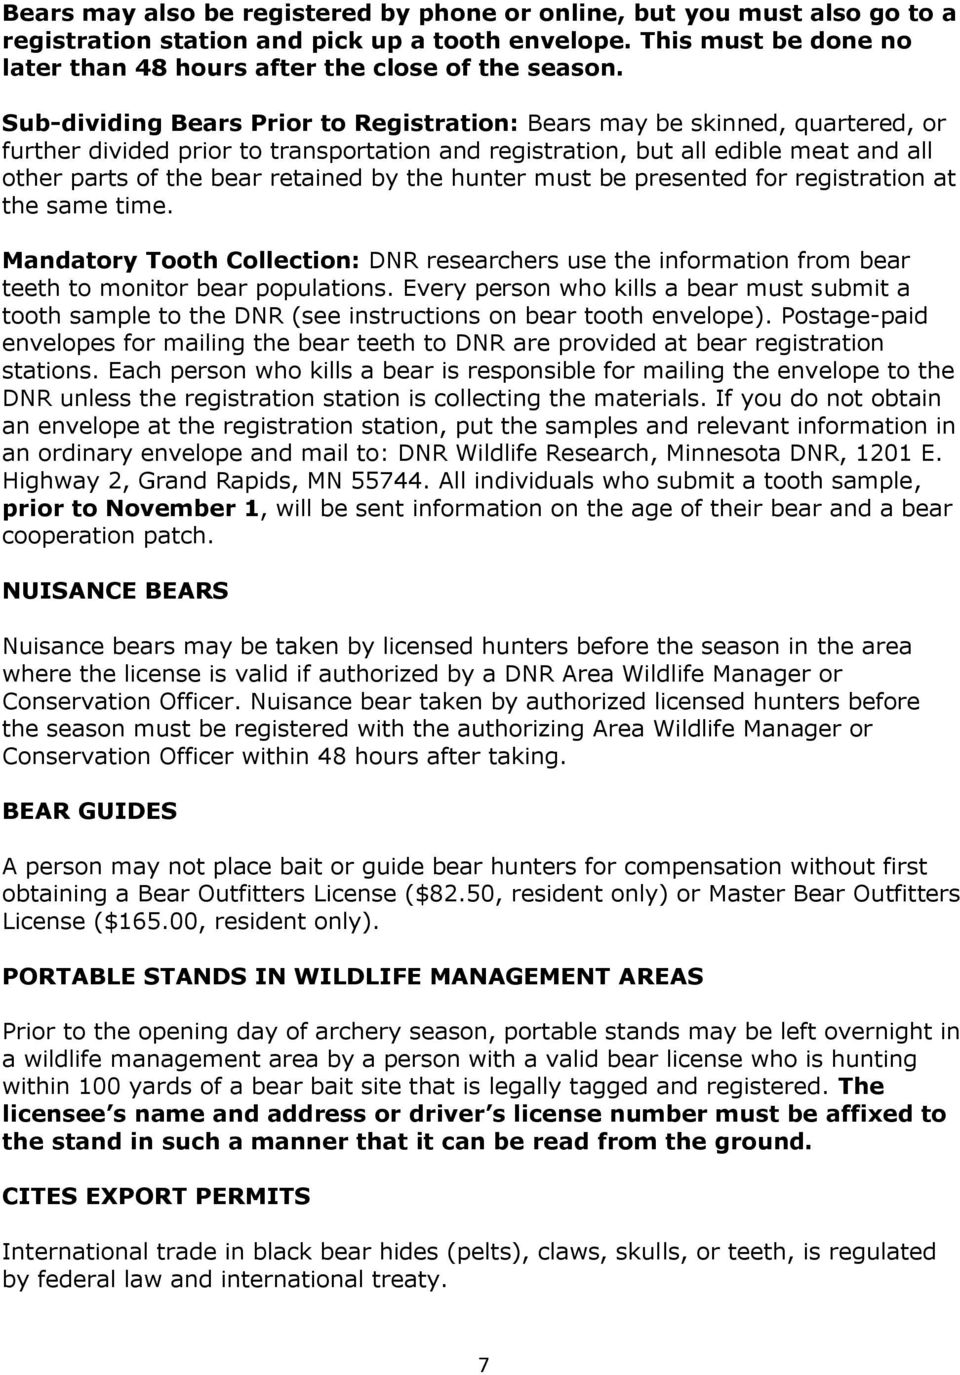 the hunter must be presented for registration at the same time. Mandatory Tooth Collection: DNR researchers use the information from bear teeth to monitor bear populations.